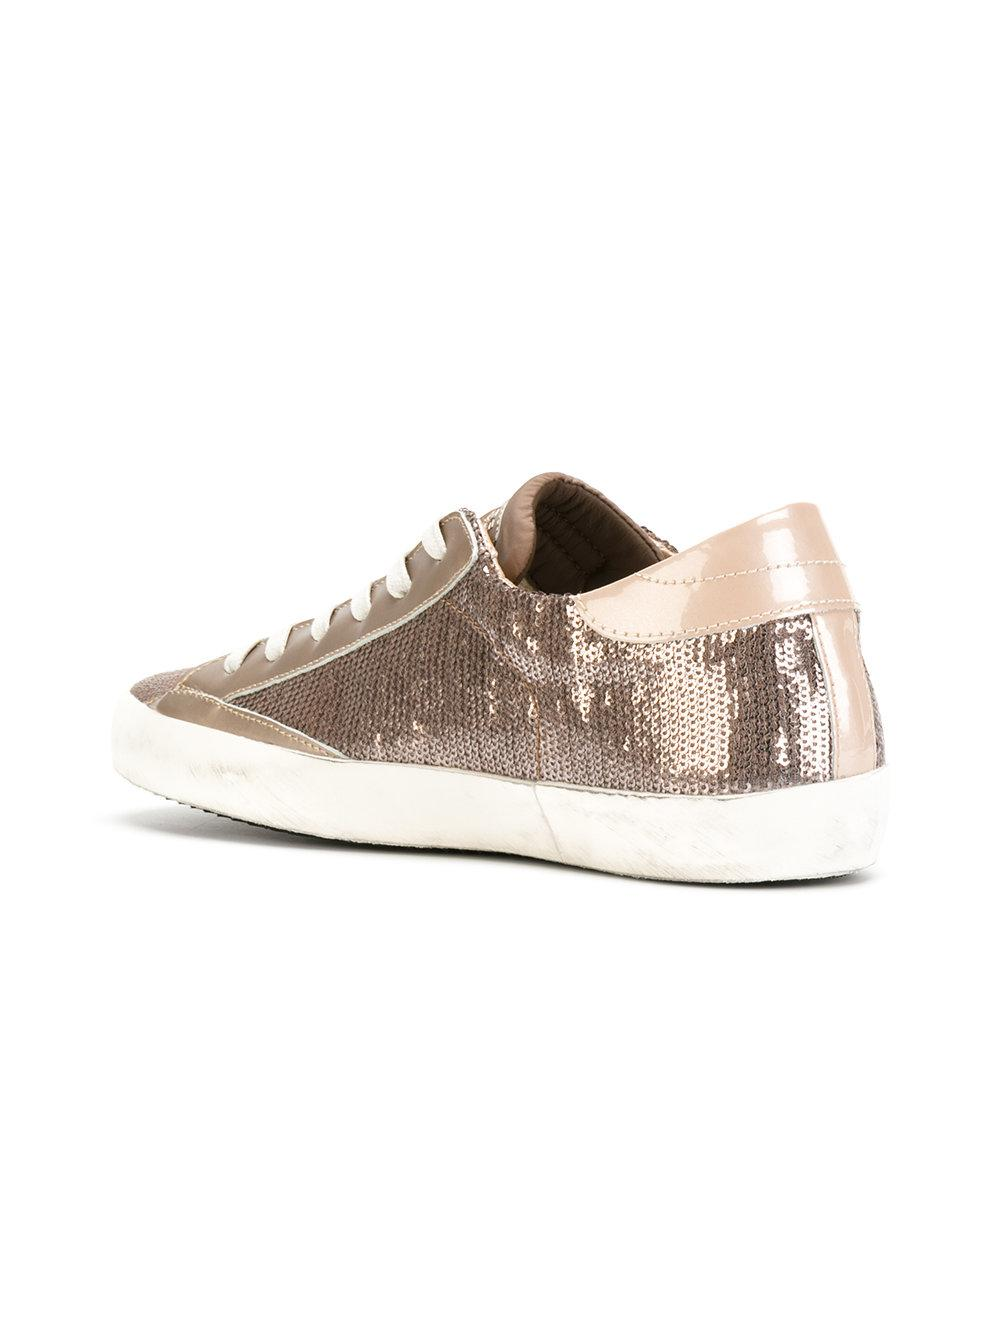 embellished lace up sneakers - Nude & Neutrals Philippe Model E3vBezp